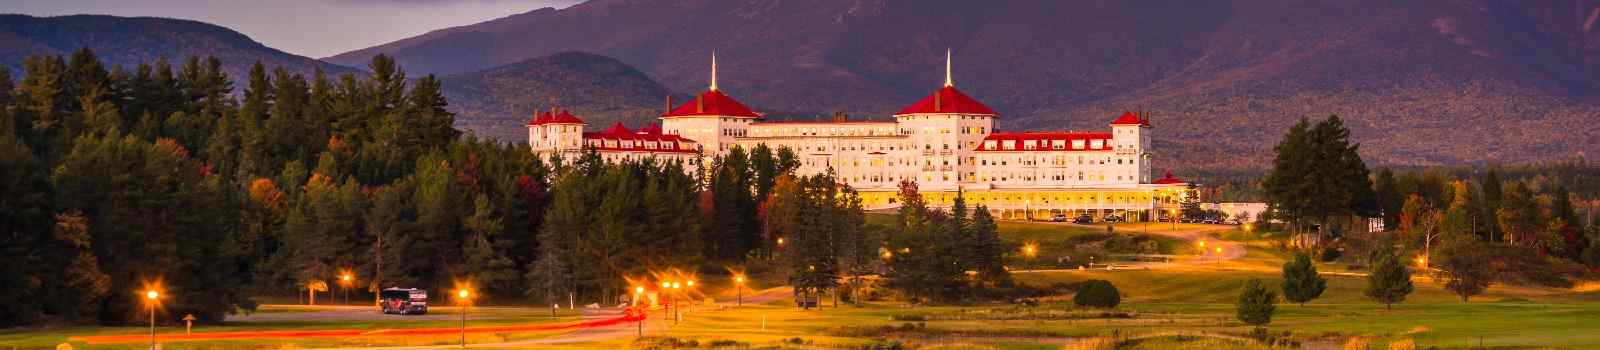 NEU-ENGLANDS-NORDEN  Hotel in Bretton Woods New Hampshire